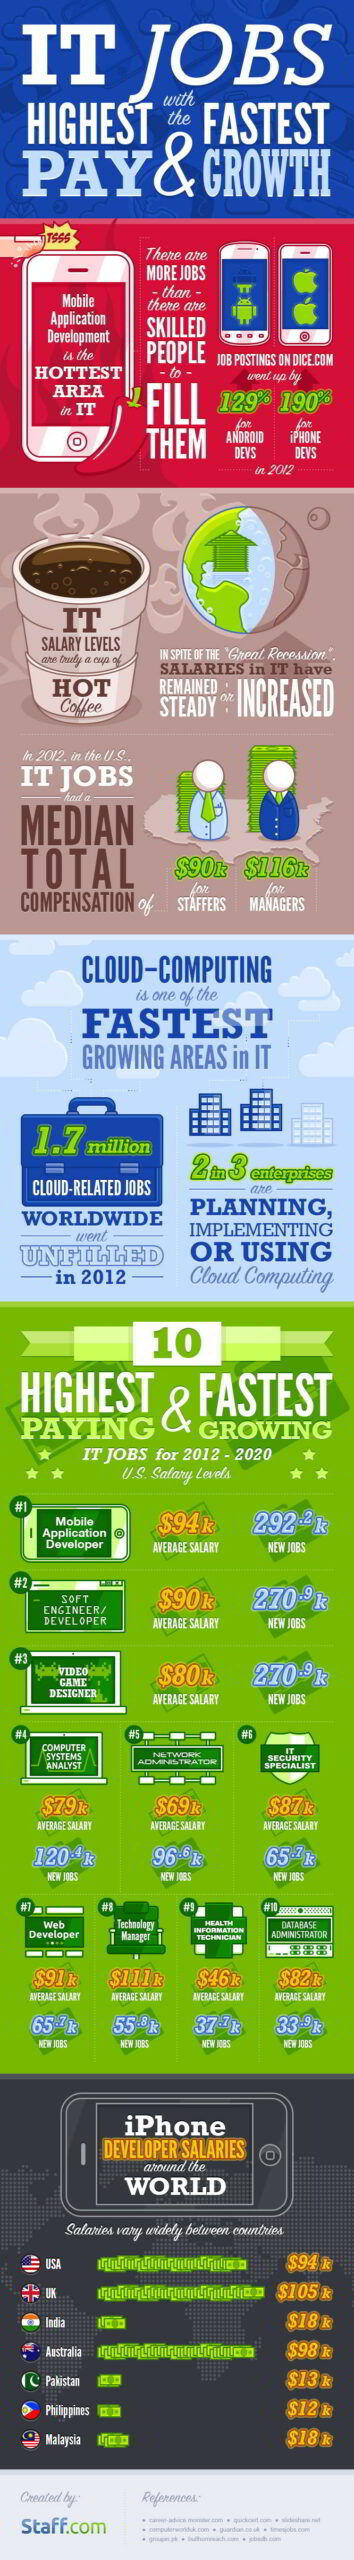 highest paying IT jobs